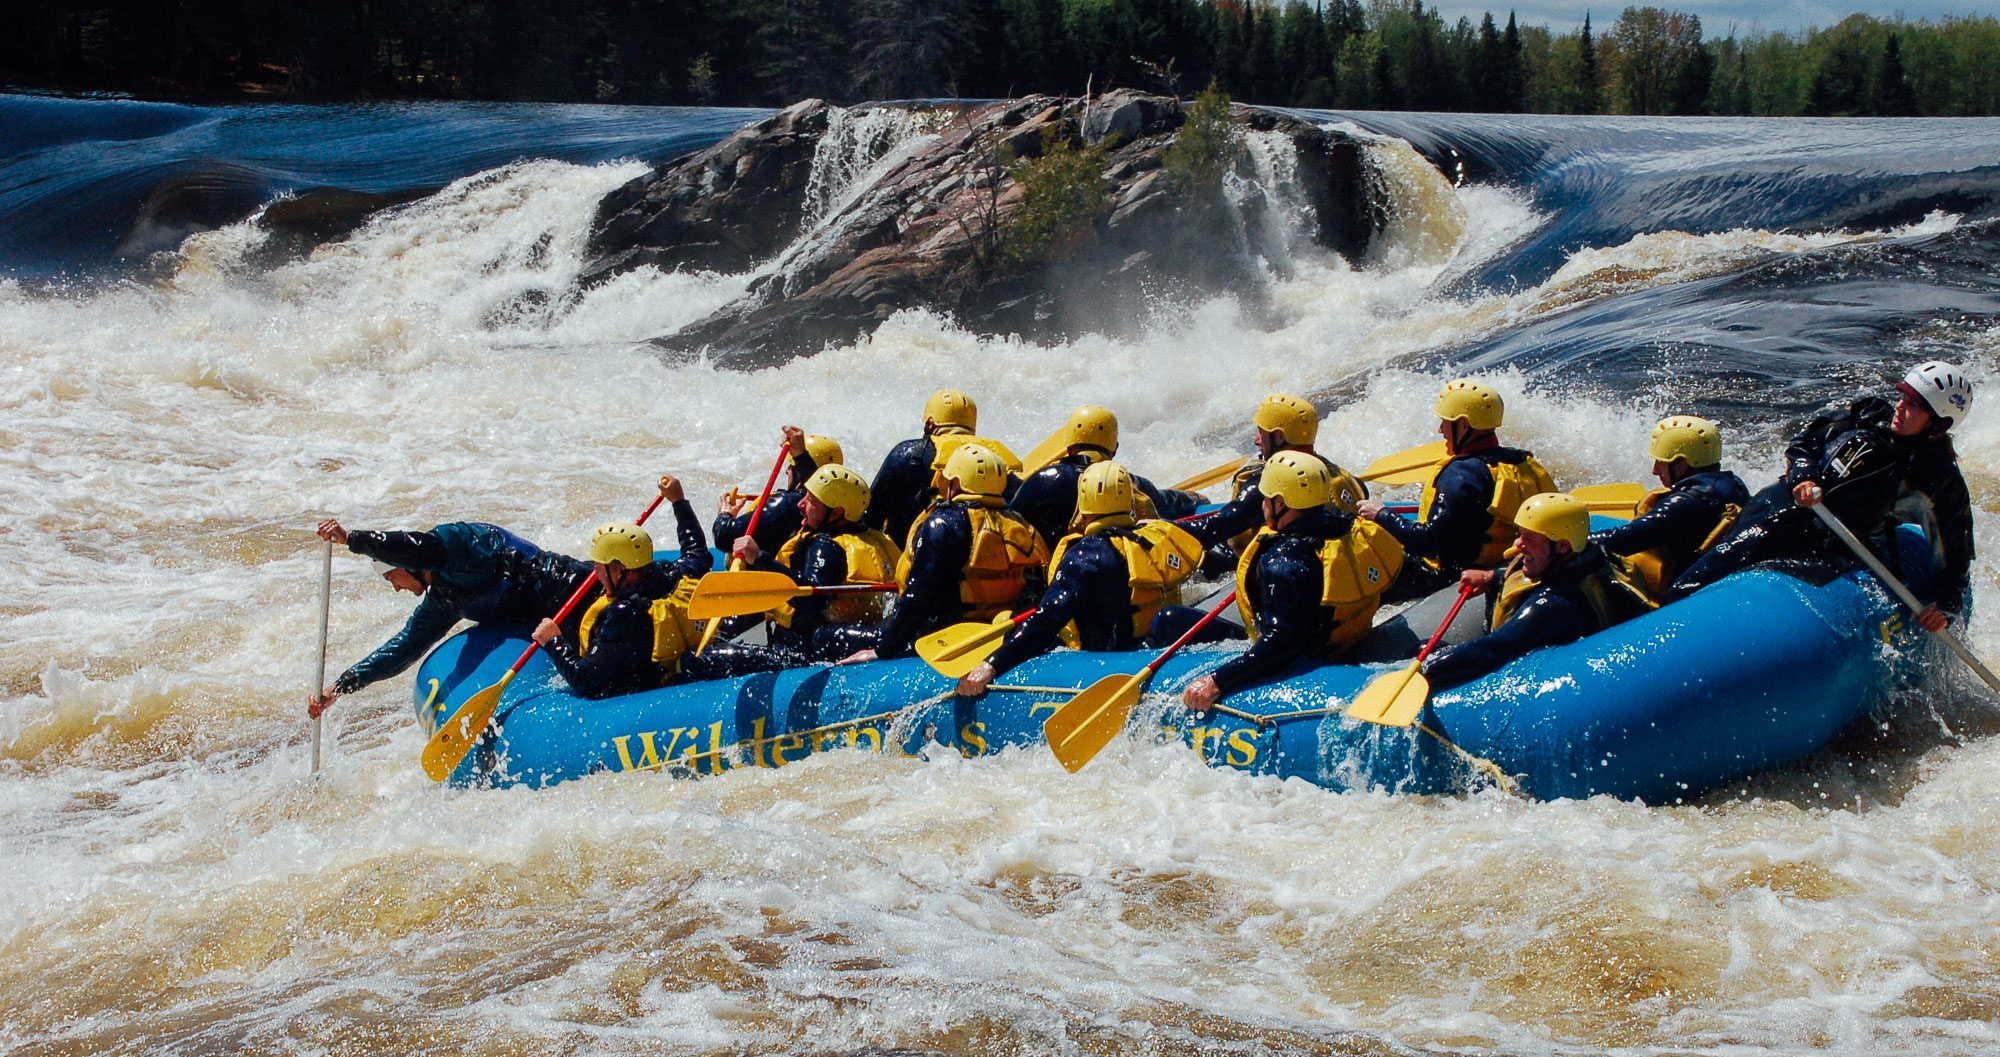 White water rafting in Ottawa is a must do when embarking on a rugby tour to Canada